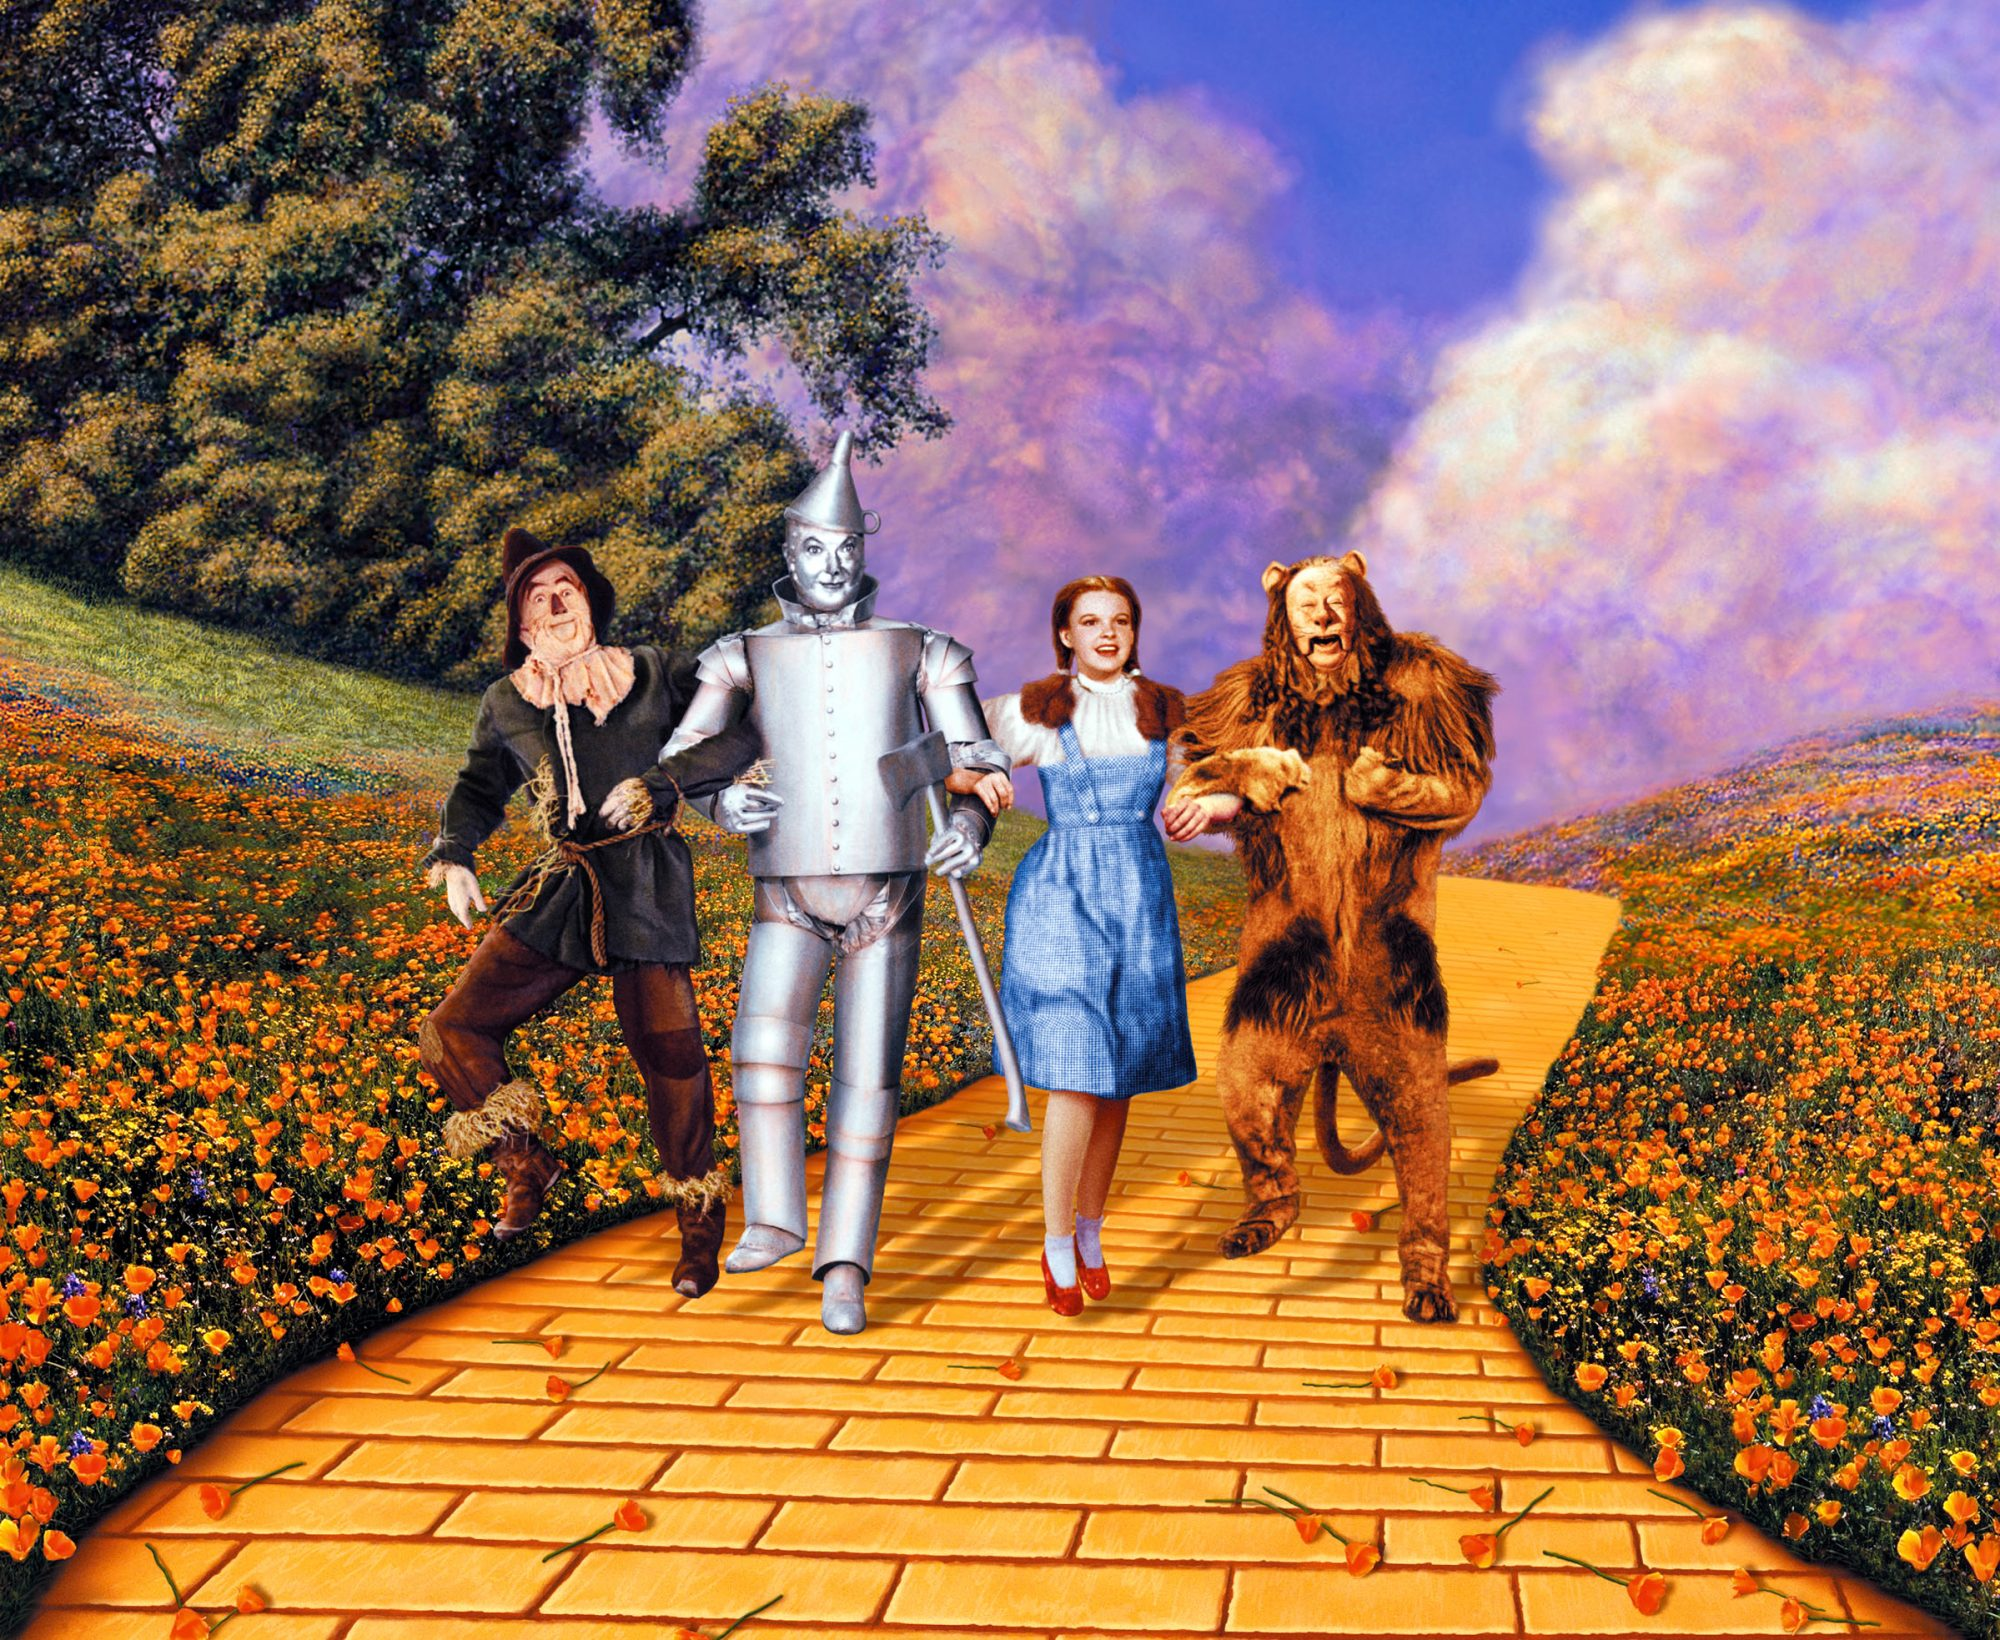 10 Little-Known Facts About The Wizard of Oz